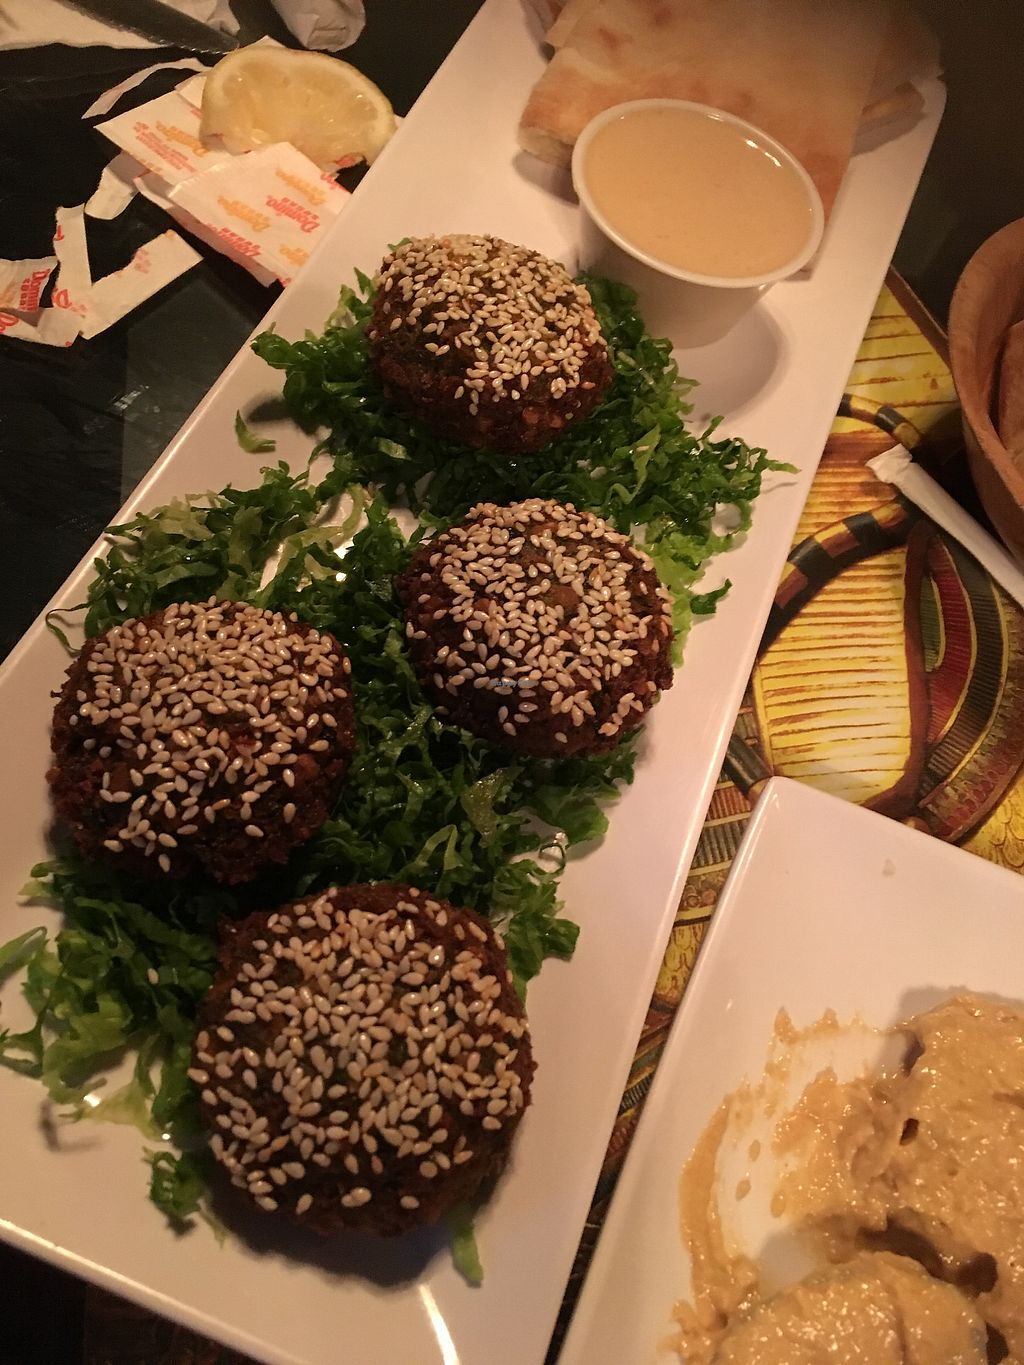 """Photo of King Tut  by <a href=""""/members/profile/SharonLaneHenderson"""">SharonLaneHenderson</a> <br/>Falafel app with tahini. you won't regret it! <br/> August 13, 2017  - <a href='/contact/abuse/image/82097/292297'>Report</a>"""